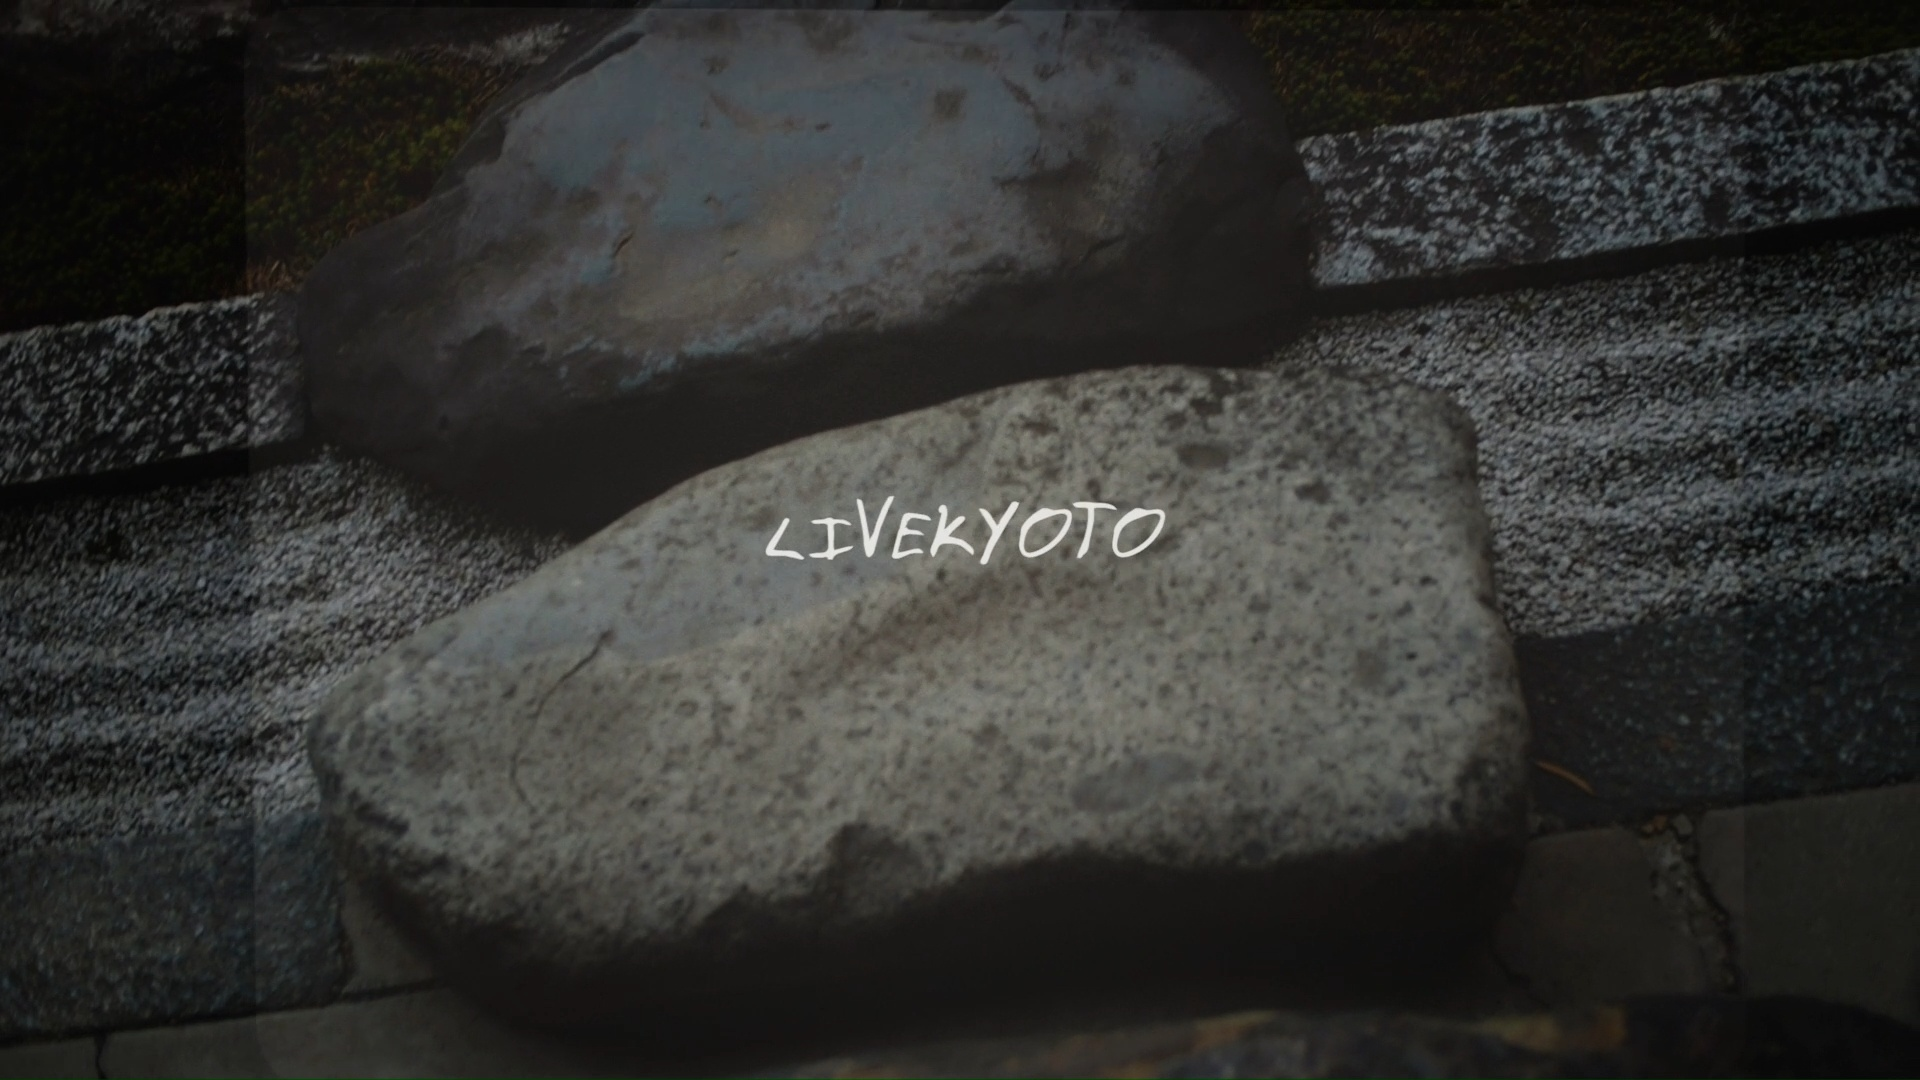 LIVEKYOTO【JAPANESE MUSIC】